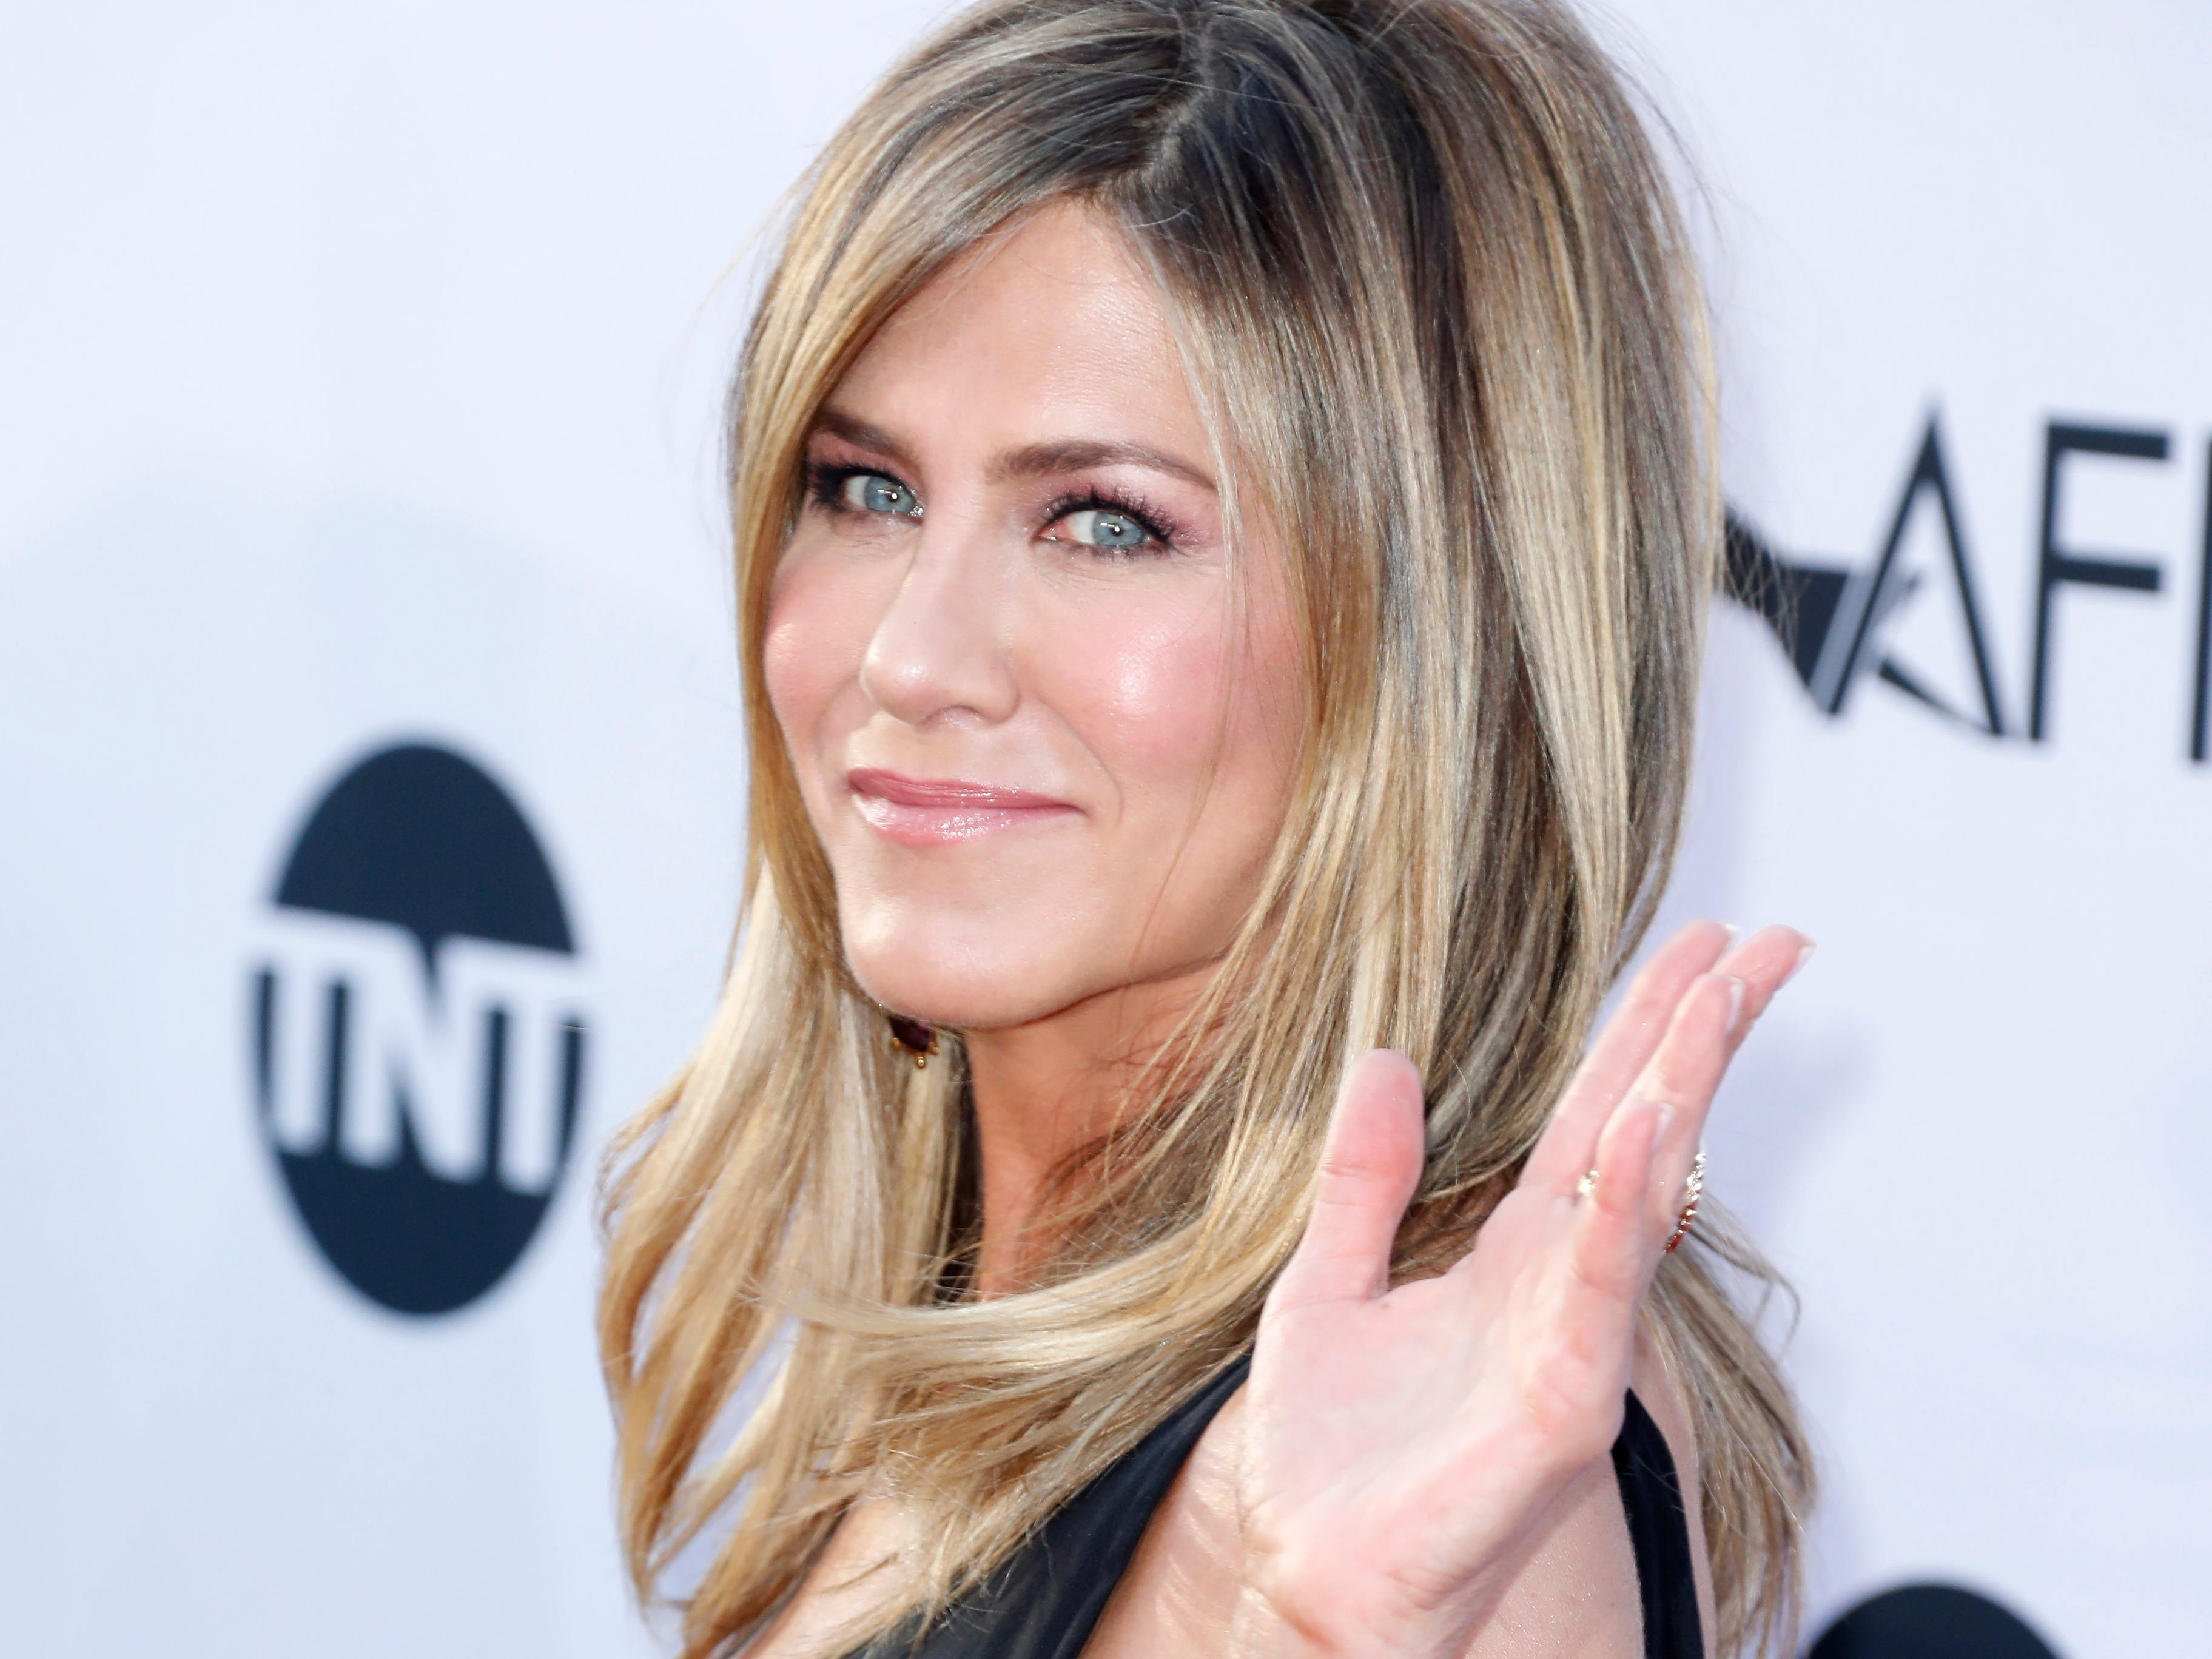 Jennifer Aniston, who has been our TV and movie friend for 25 years, turns 50 on Feb. 11. Click forward to look back at the actress life and career.